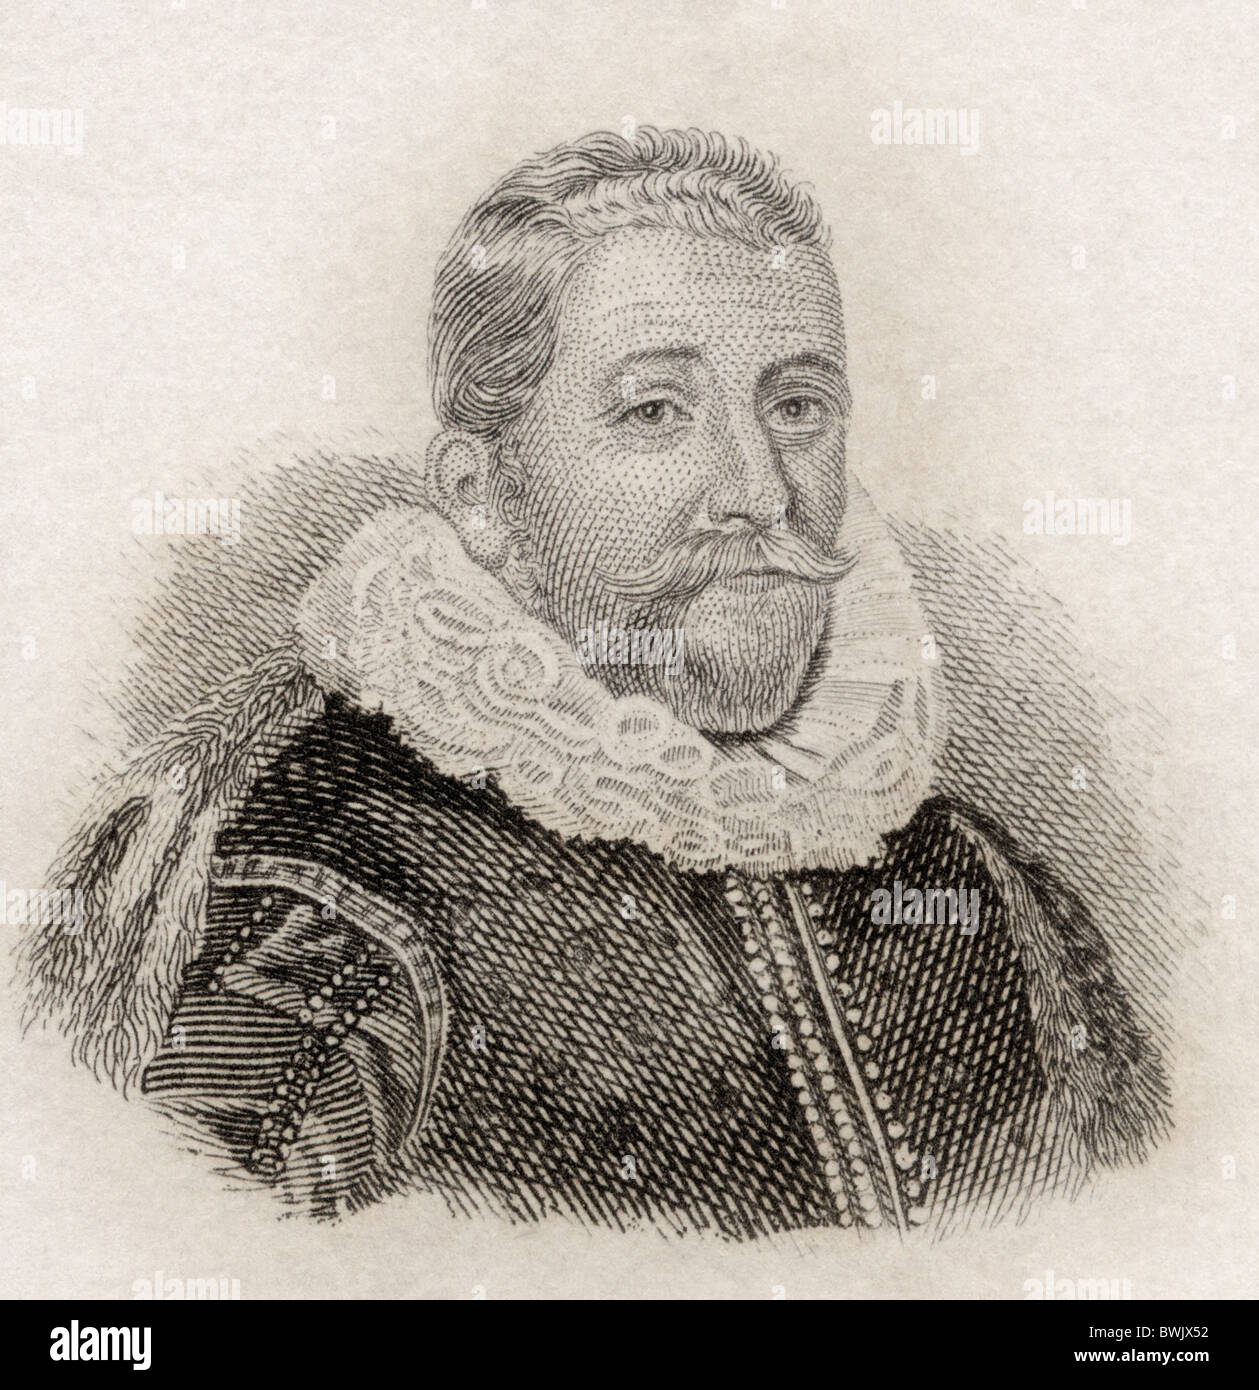 Sir Henry Wotton, 1568 to 1639. English author and diplomat. - Stock Image